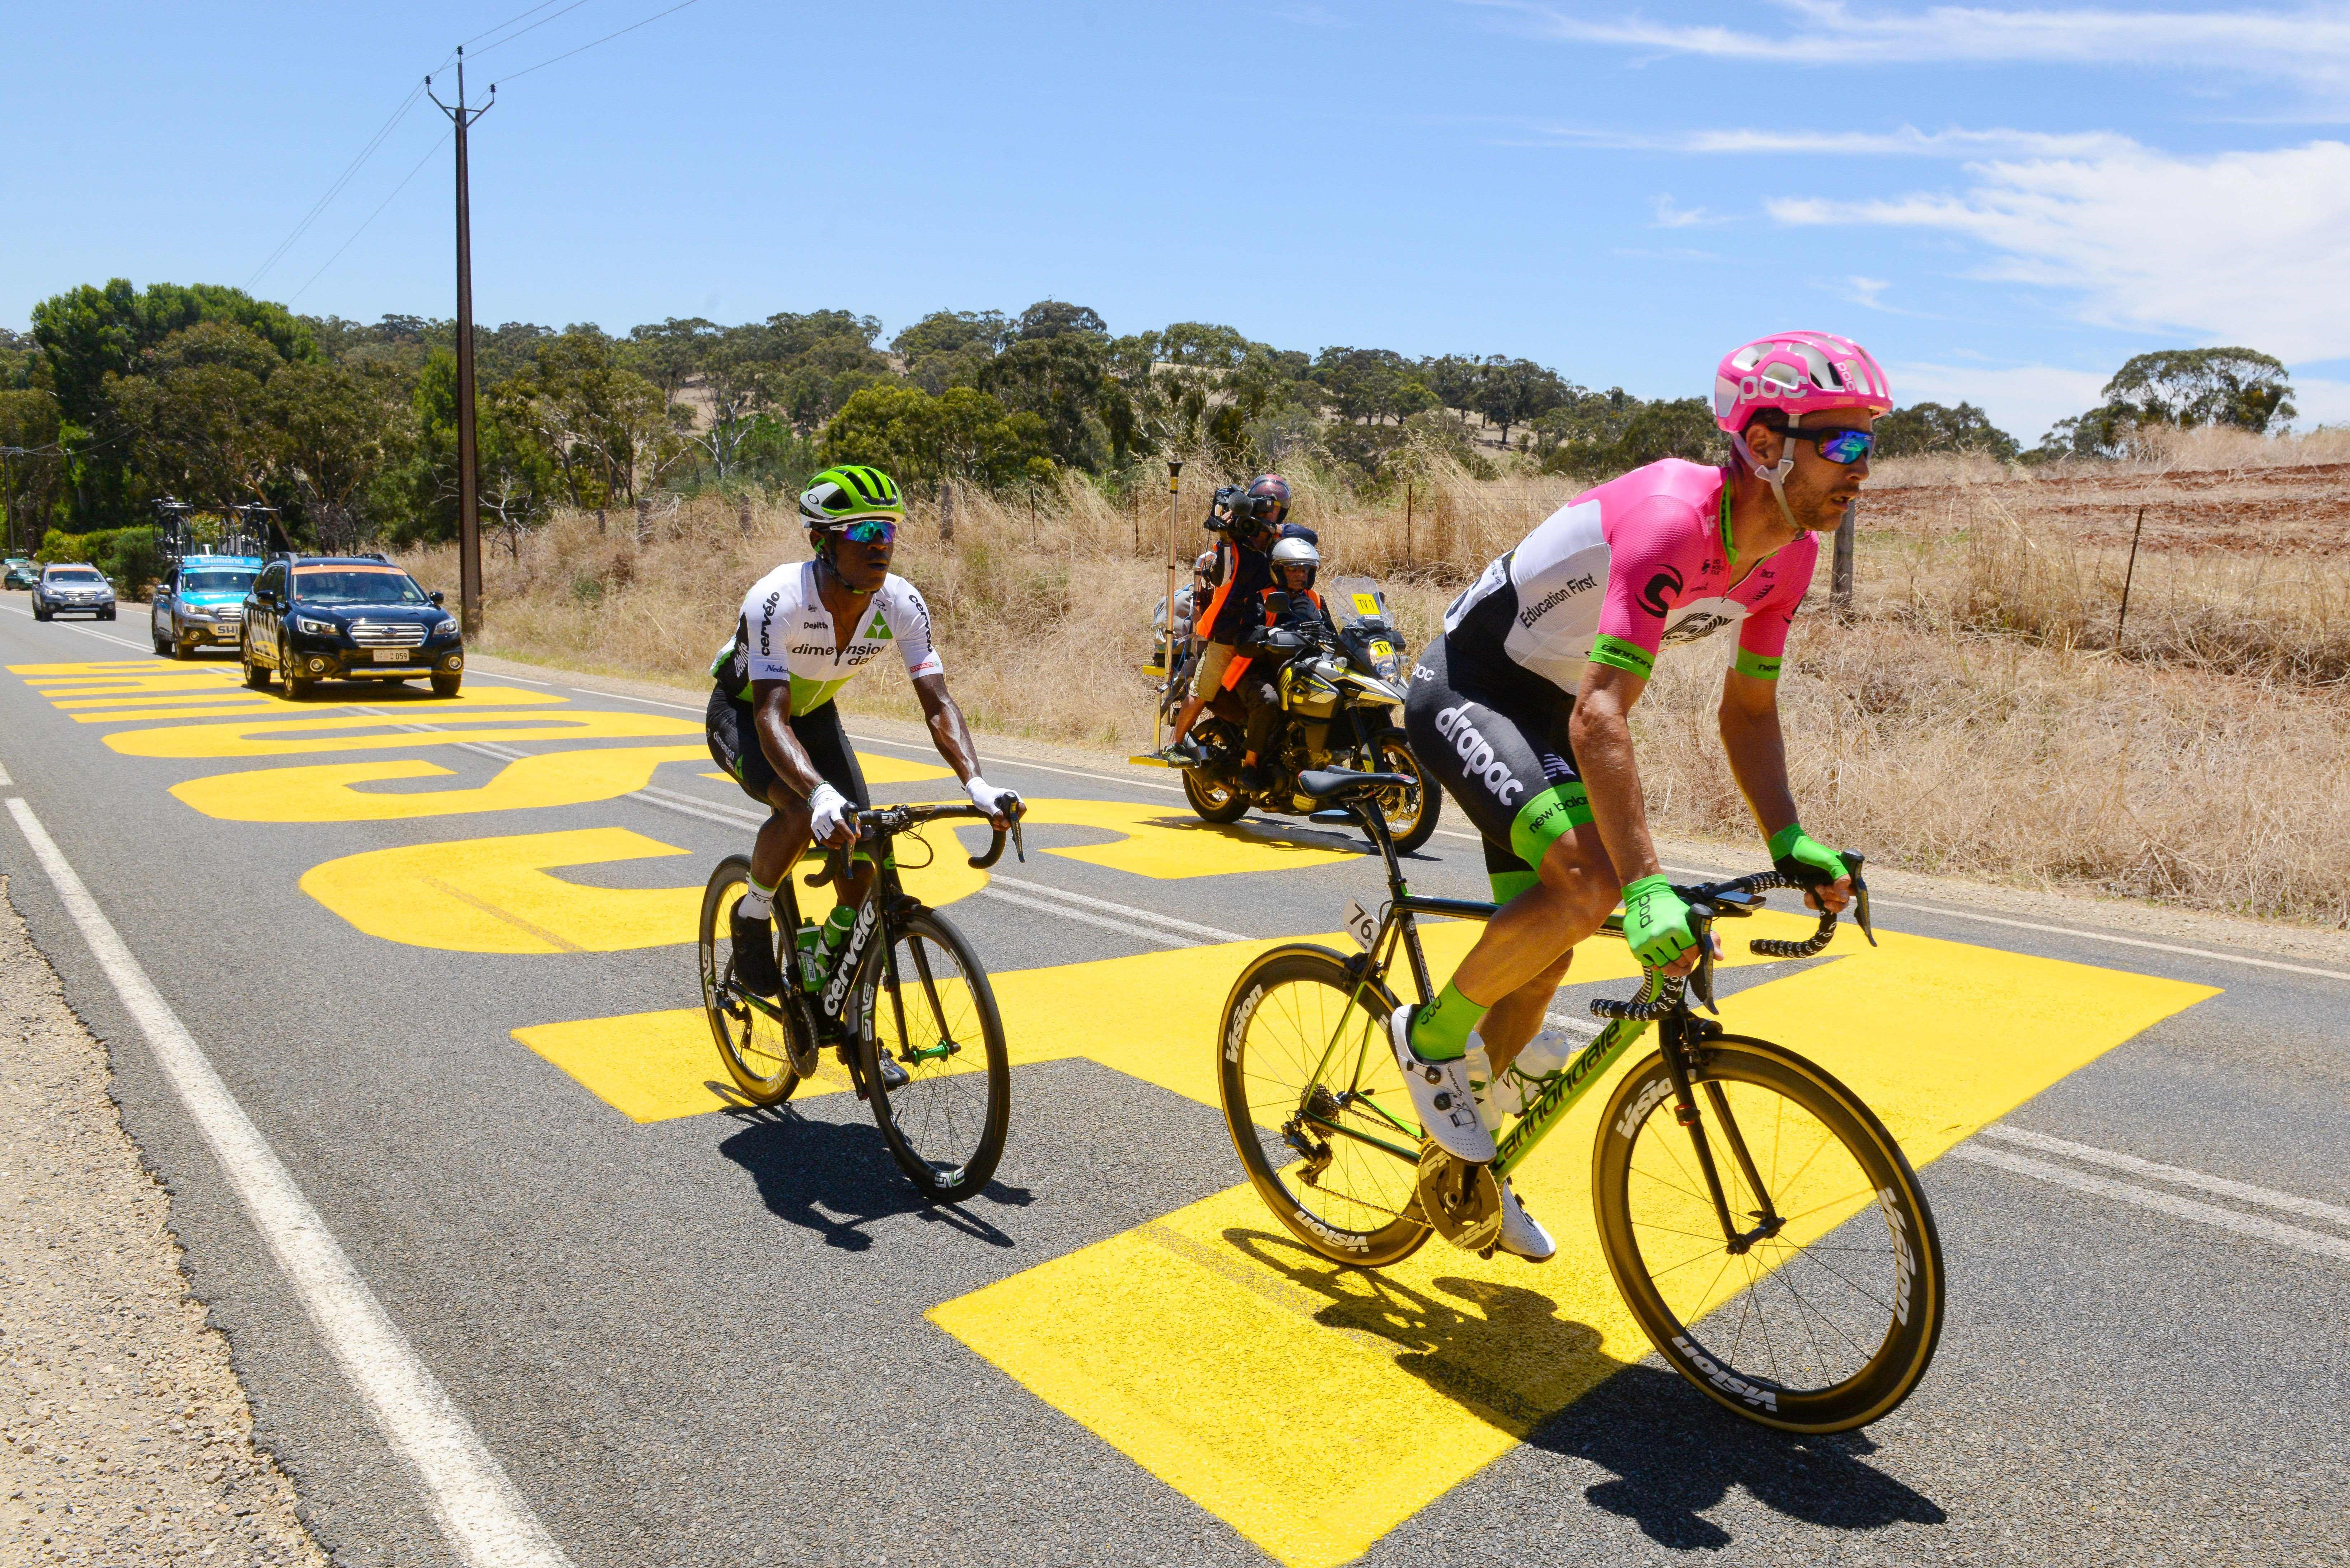 William Clarke (Education First-Drapac rider) et Nicholas Dlamini (Team Dimension Data) lors du Tour Down Under 2018